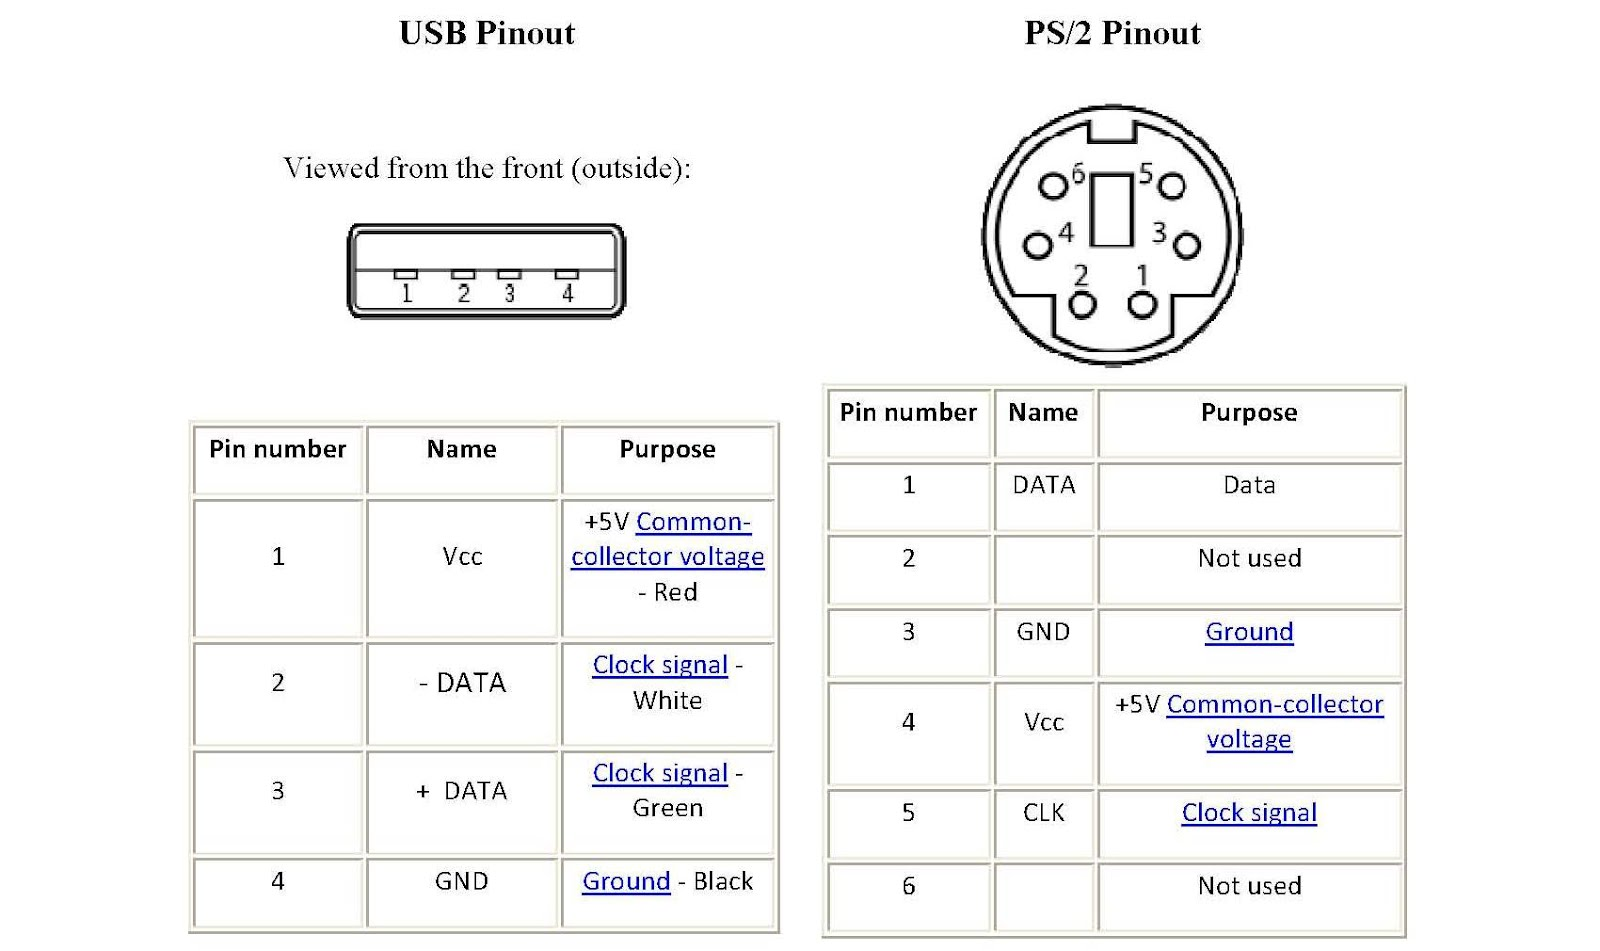 Many things that we don't know: USB To PS2 Key Board..